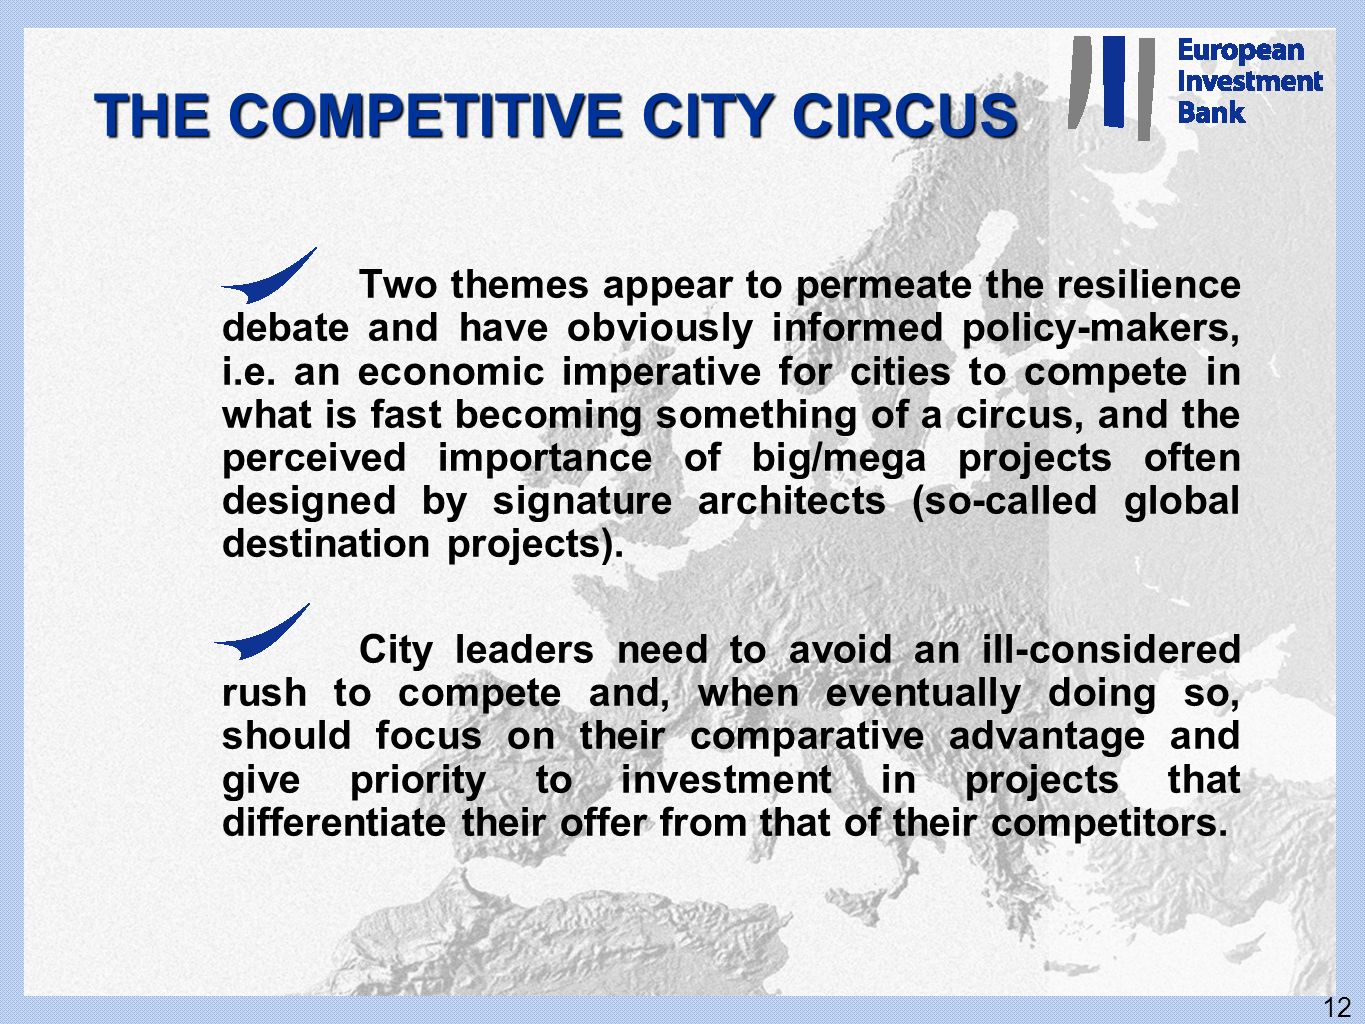 THE COMPETITIVE CITY CIRCUS